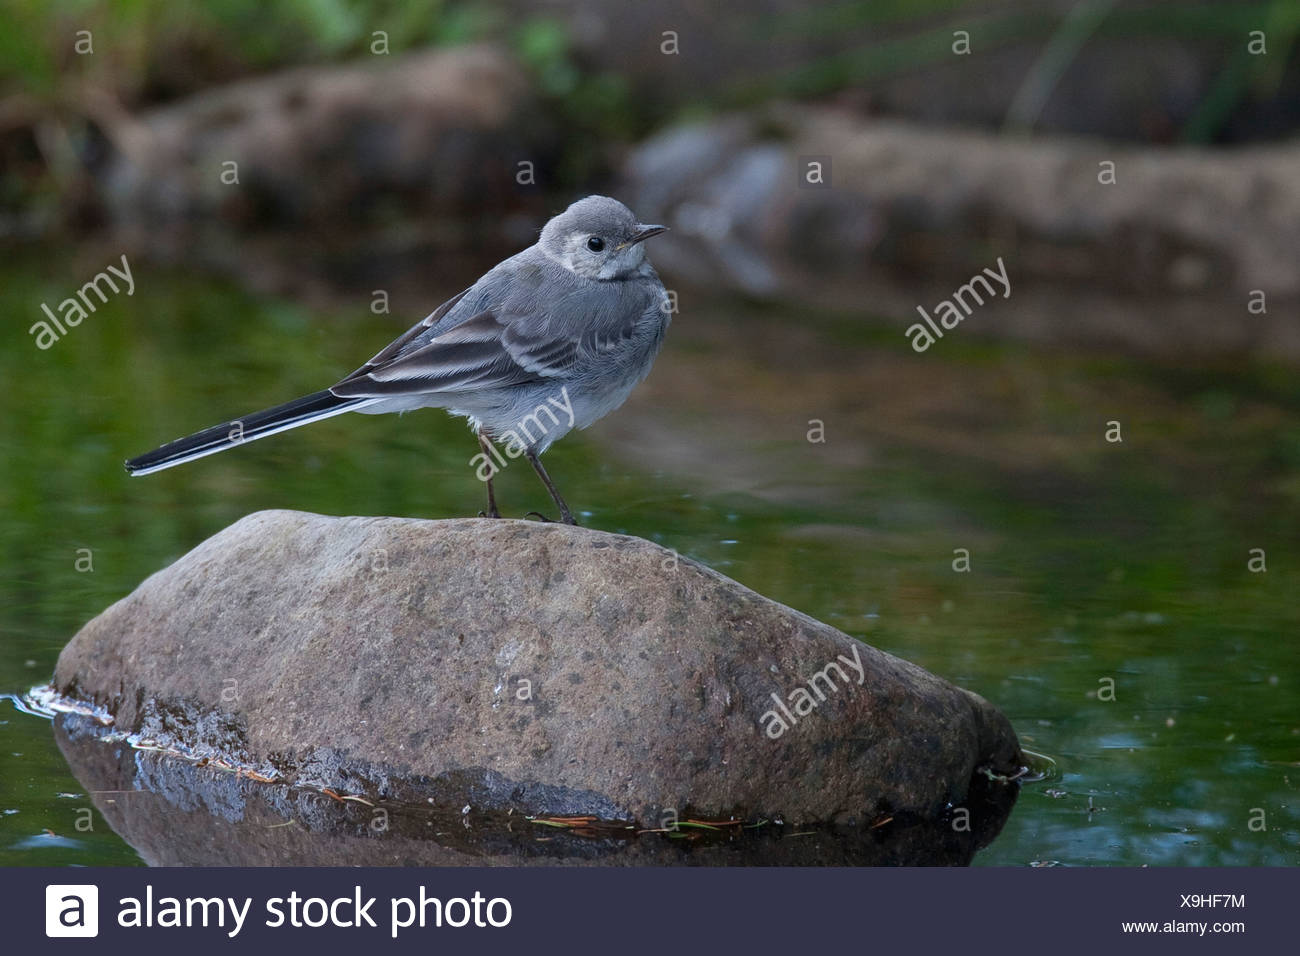 pied wagtail (Motacilla alba), squeaker sitting on a stone in a creek, Germany - Stock Image